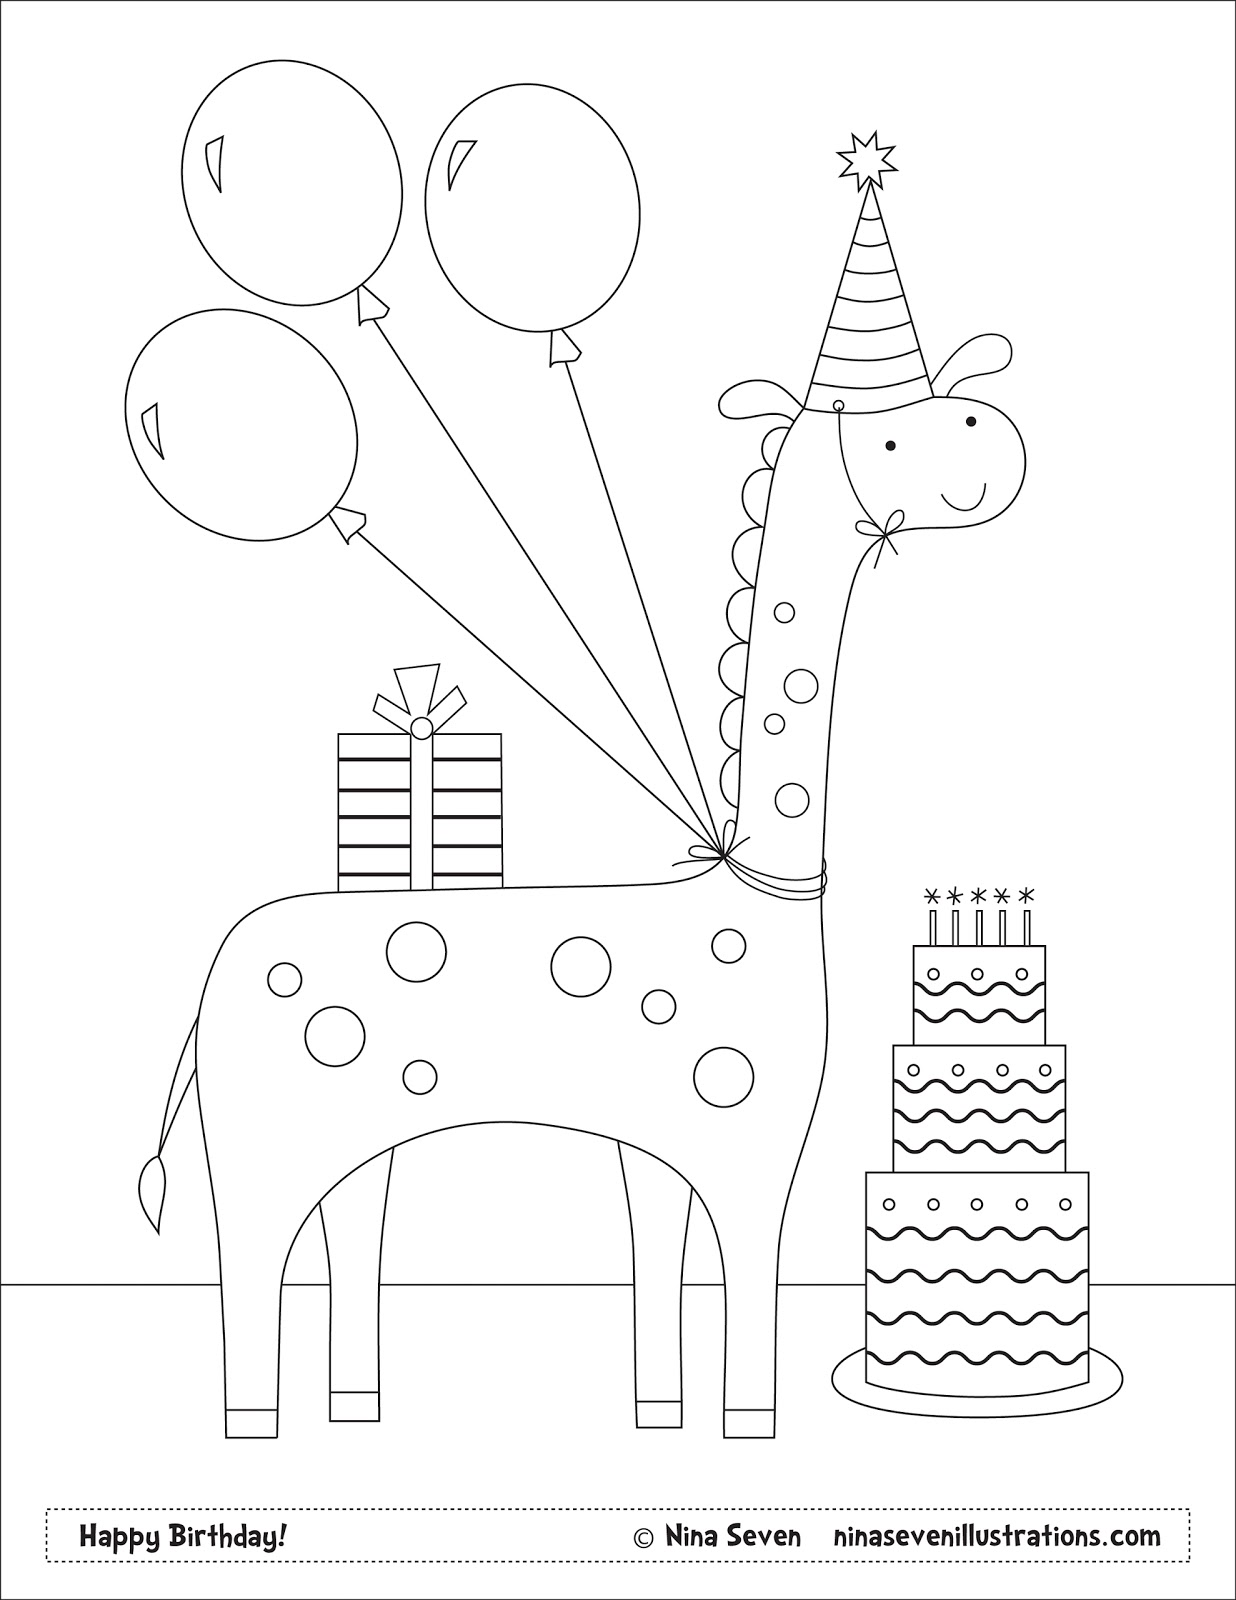 1236x1600 Nina Seven Free Coloring Pages